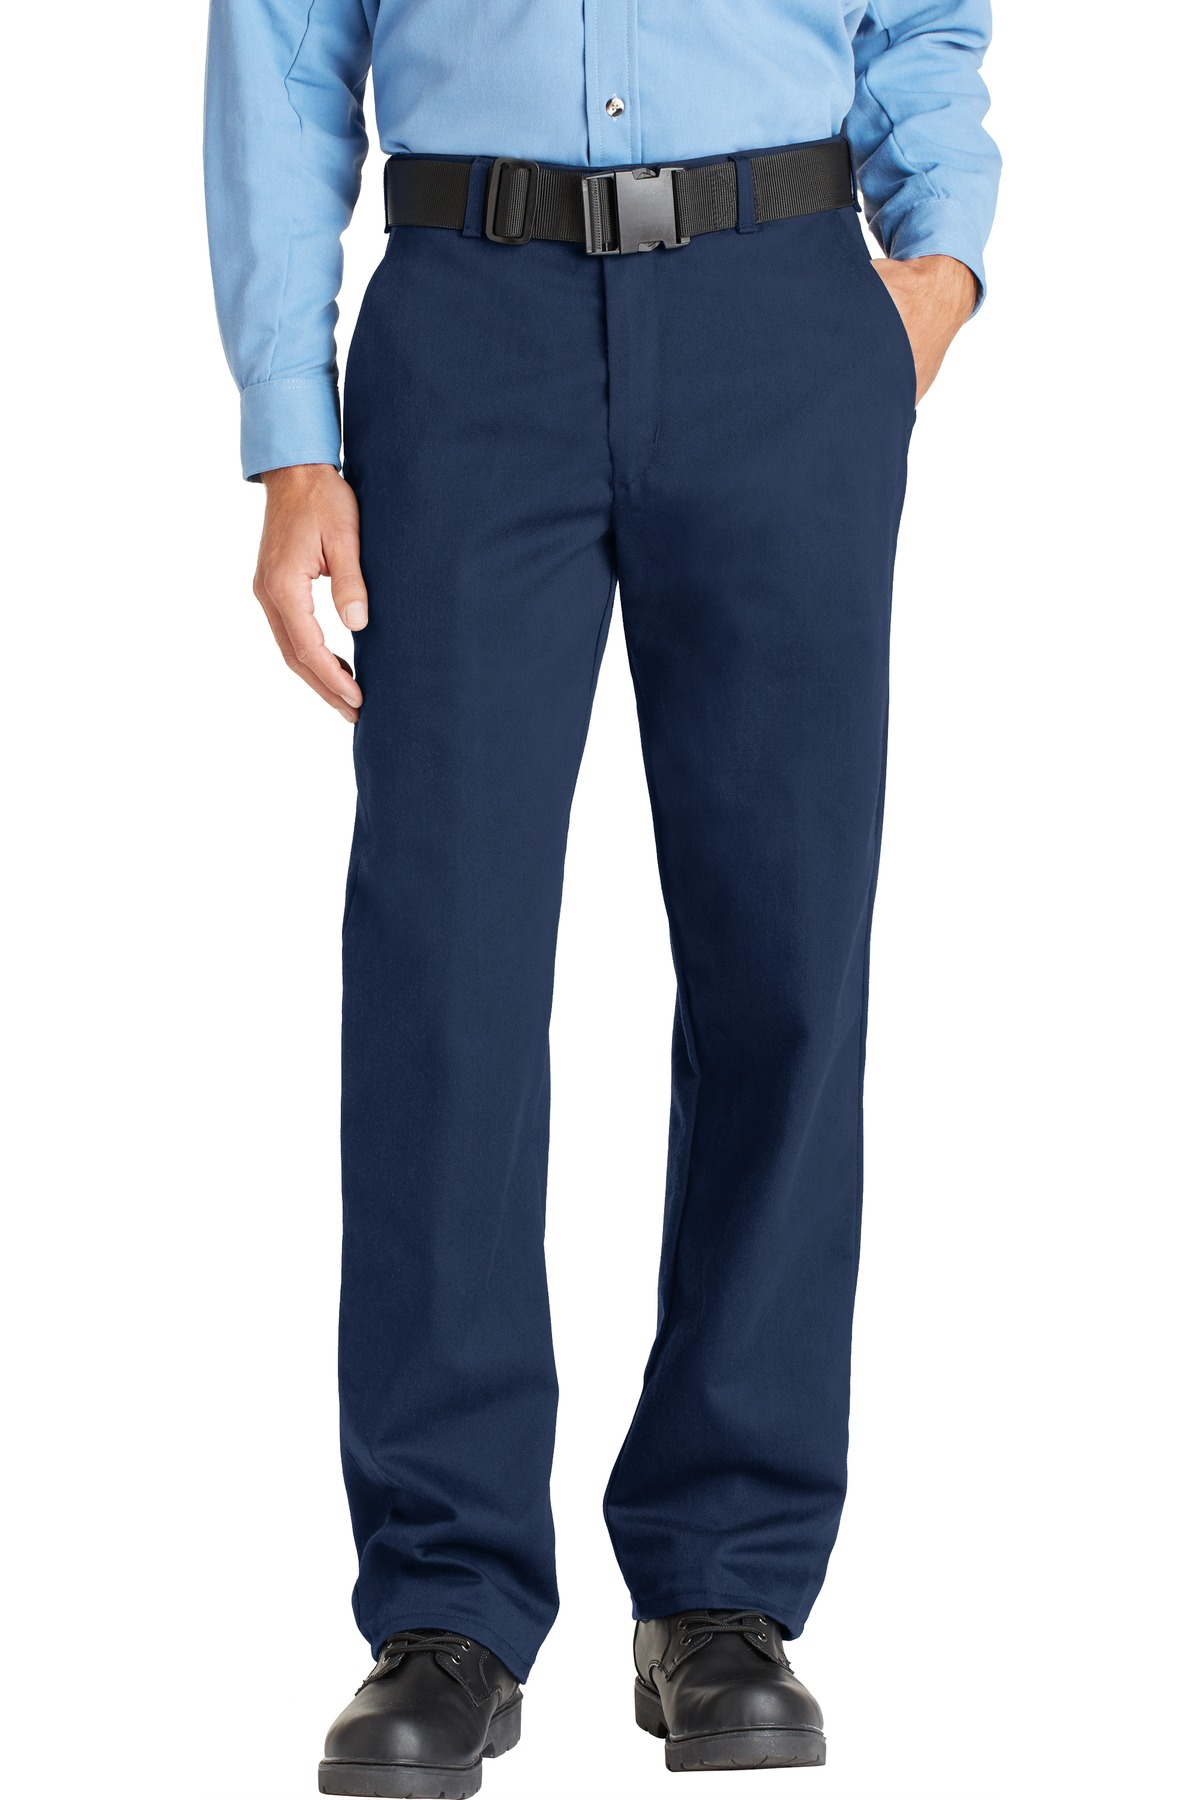 Bulwark  EXCEL FR  ComforTouch  PLW2 - Work Pant